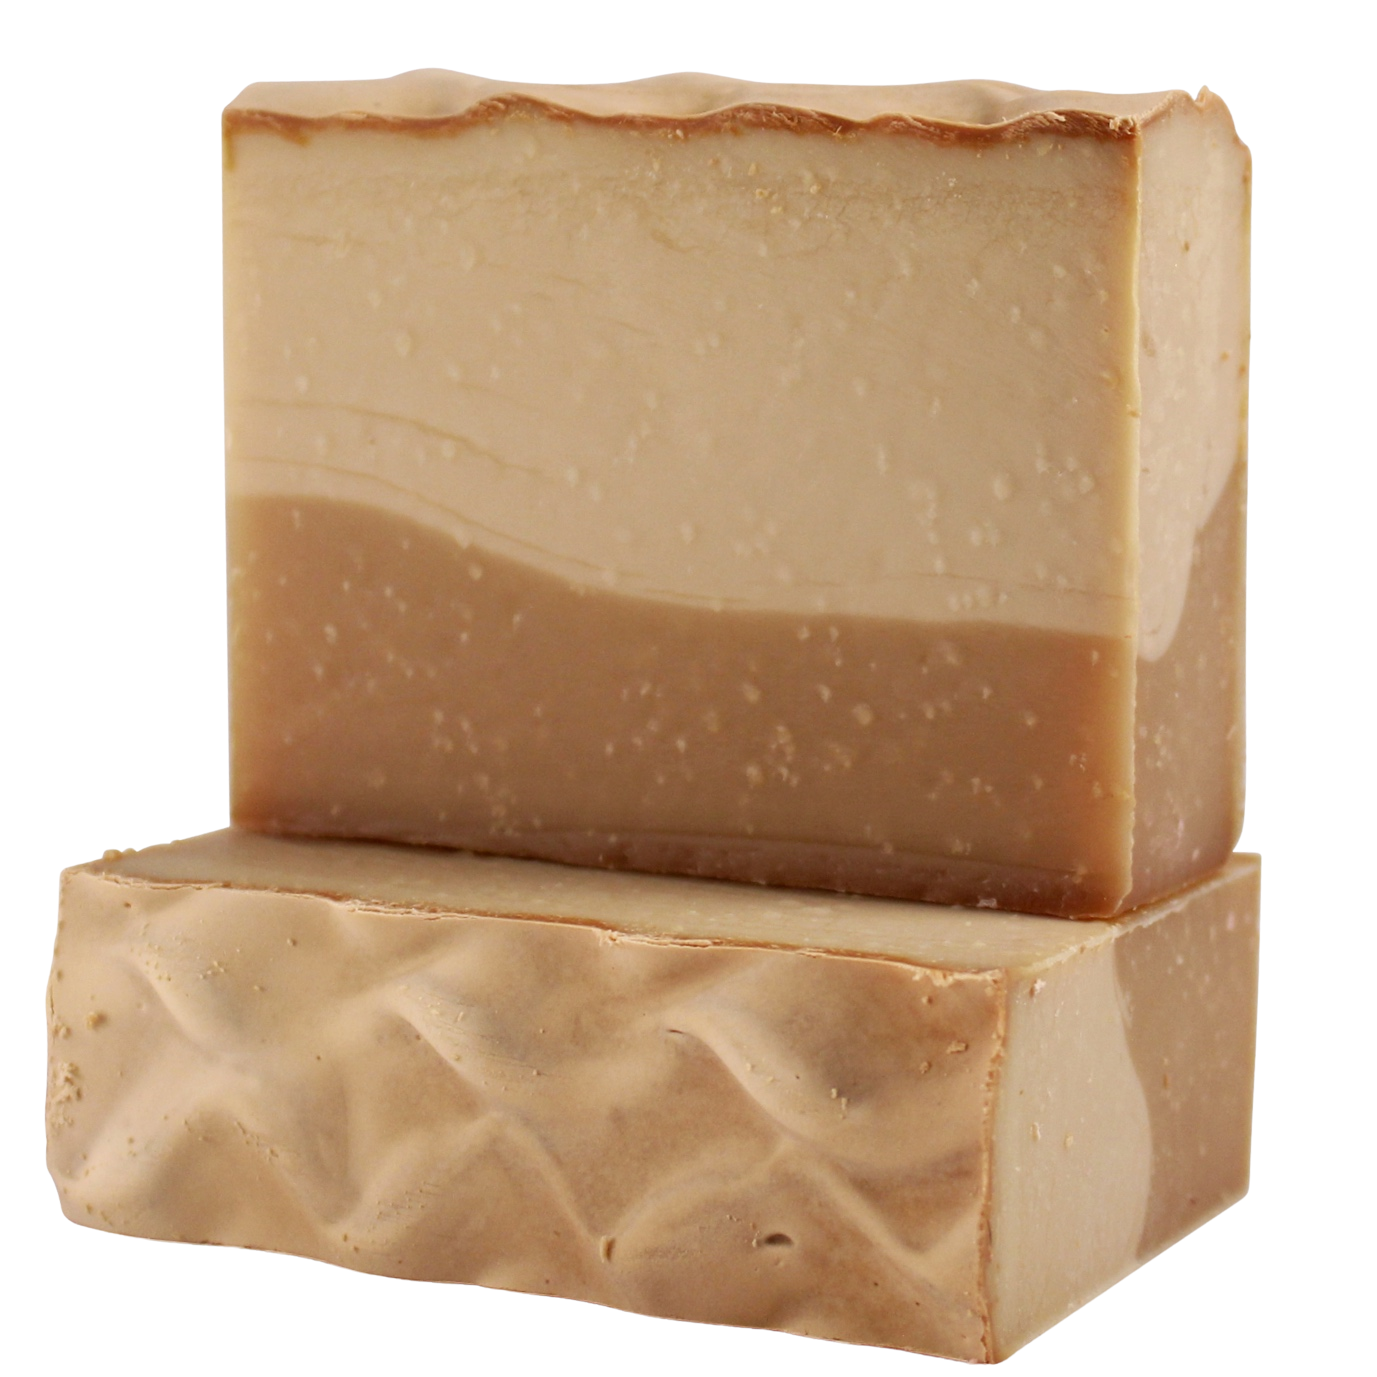 Canard Labs Handcrafted soap, stout soap almond biscotti and oatmeal stout